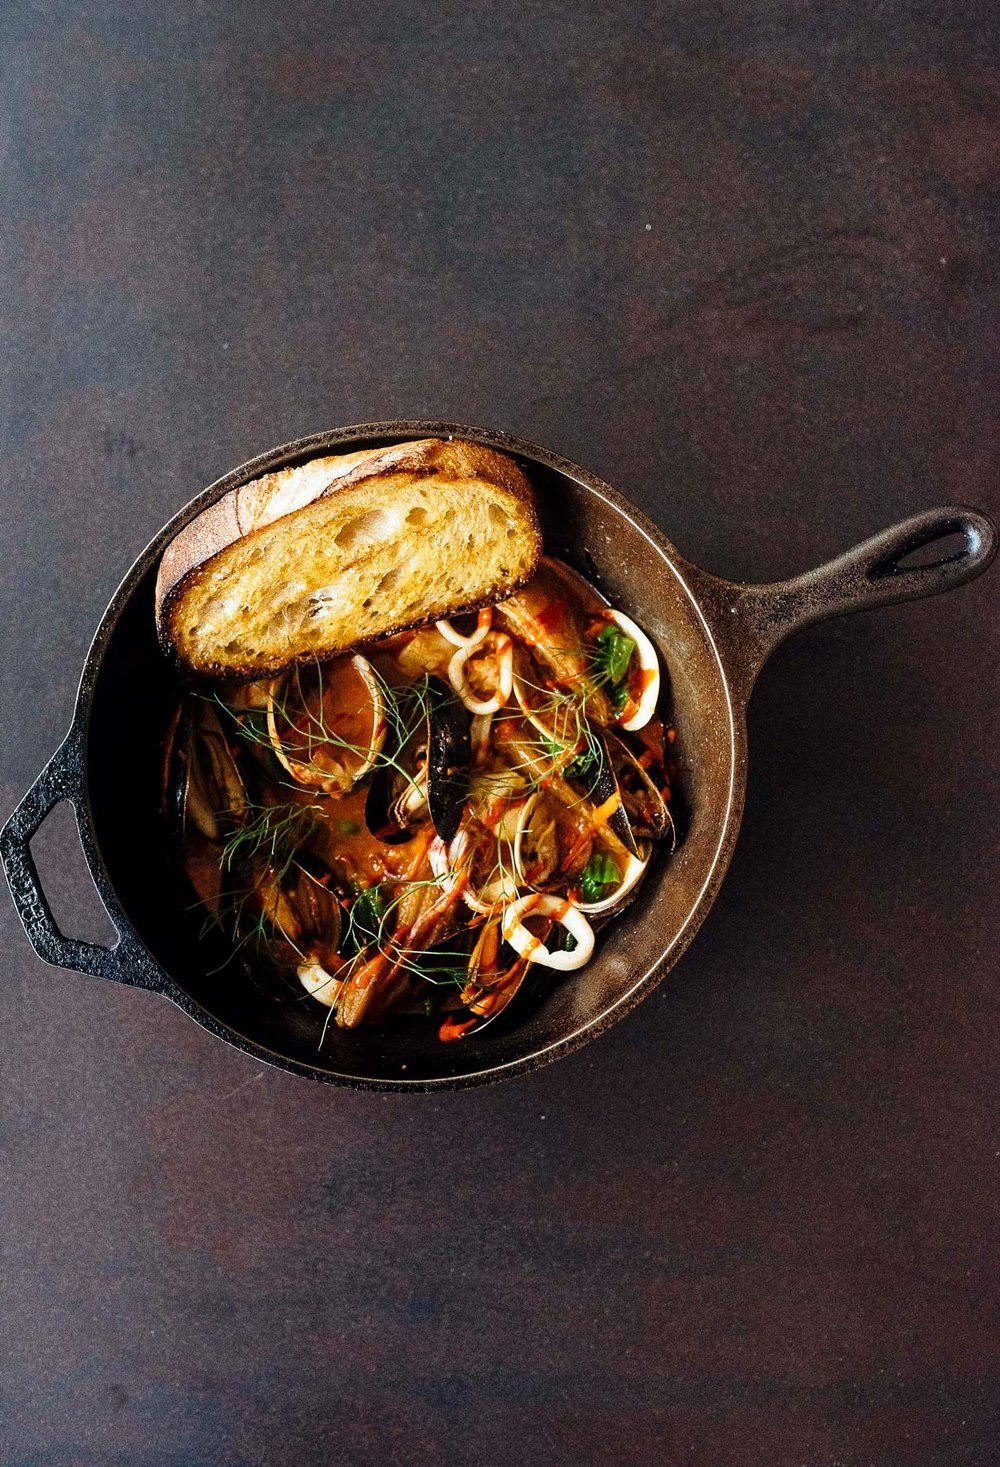 The seafood stew is a permanent menu fixture that is the brainchild of both Eliot and Olson, combining classical and modern technique to showcase the quality of the components.